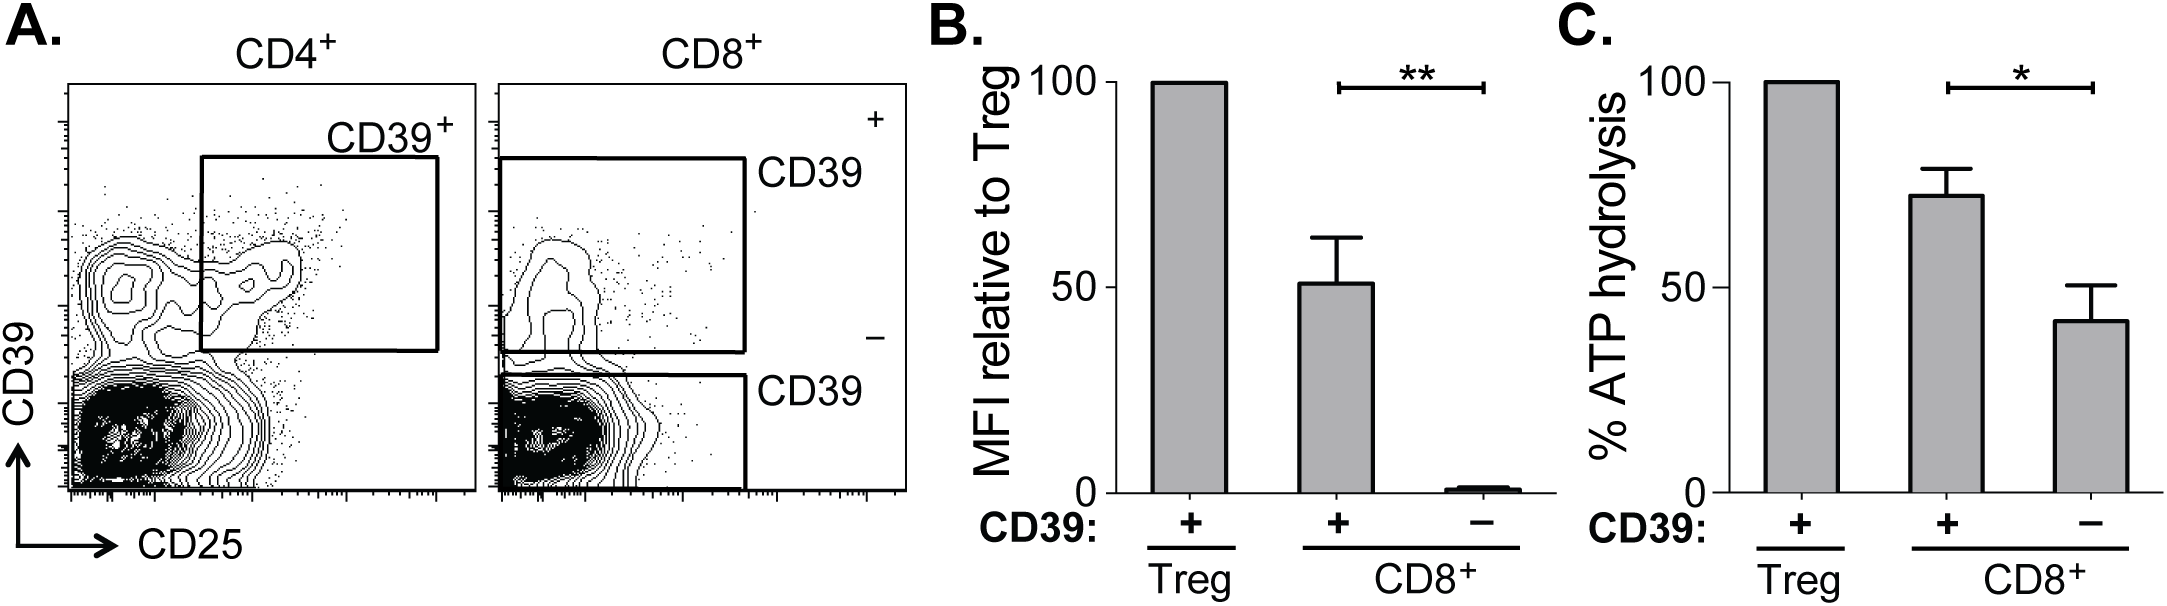 CD39 expressed by CD8<sup>+</sup> T cells in HCV infection is enzymatically active.